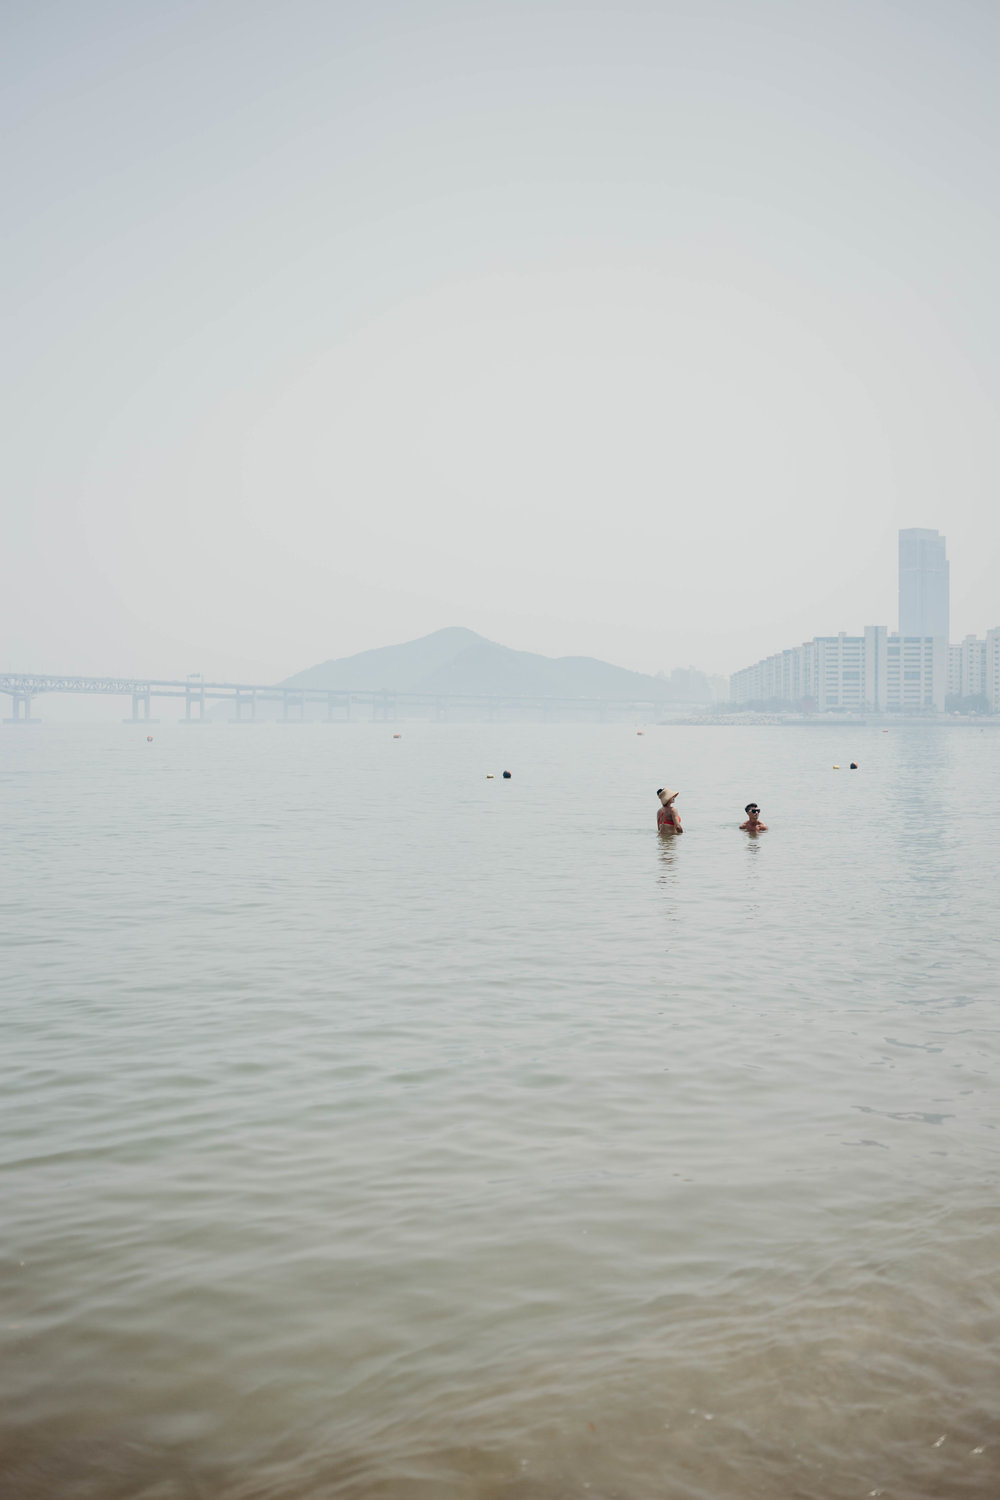 On Travel | On the Street Where We Live (aretherelilactrees.com)  Busan, South Korea, Gwangalli Beach, Gwangalli Bridge